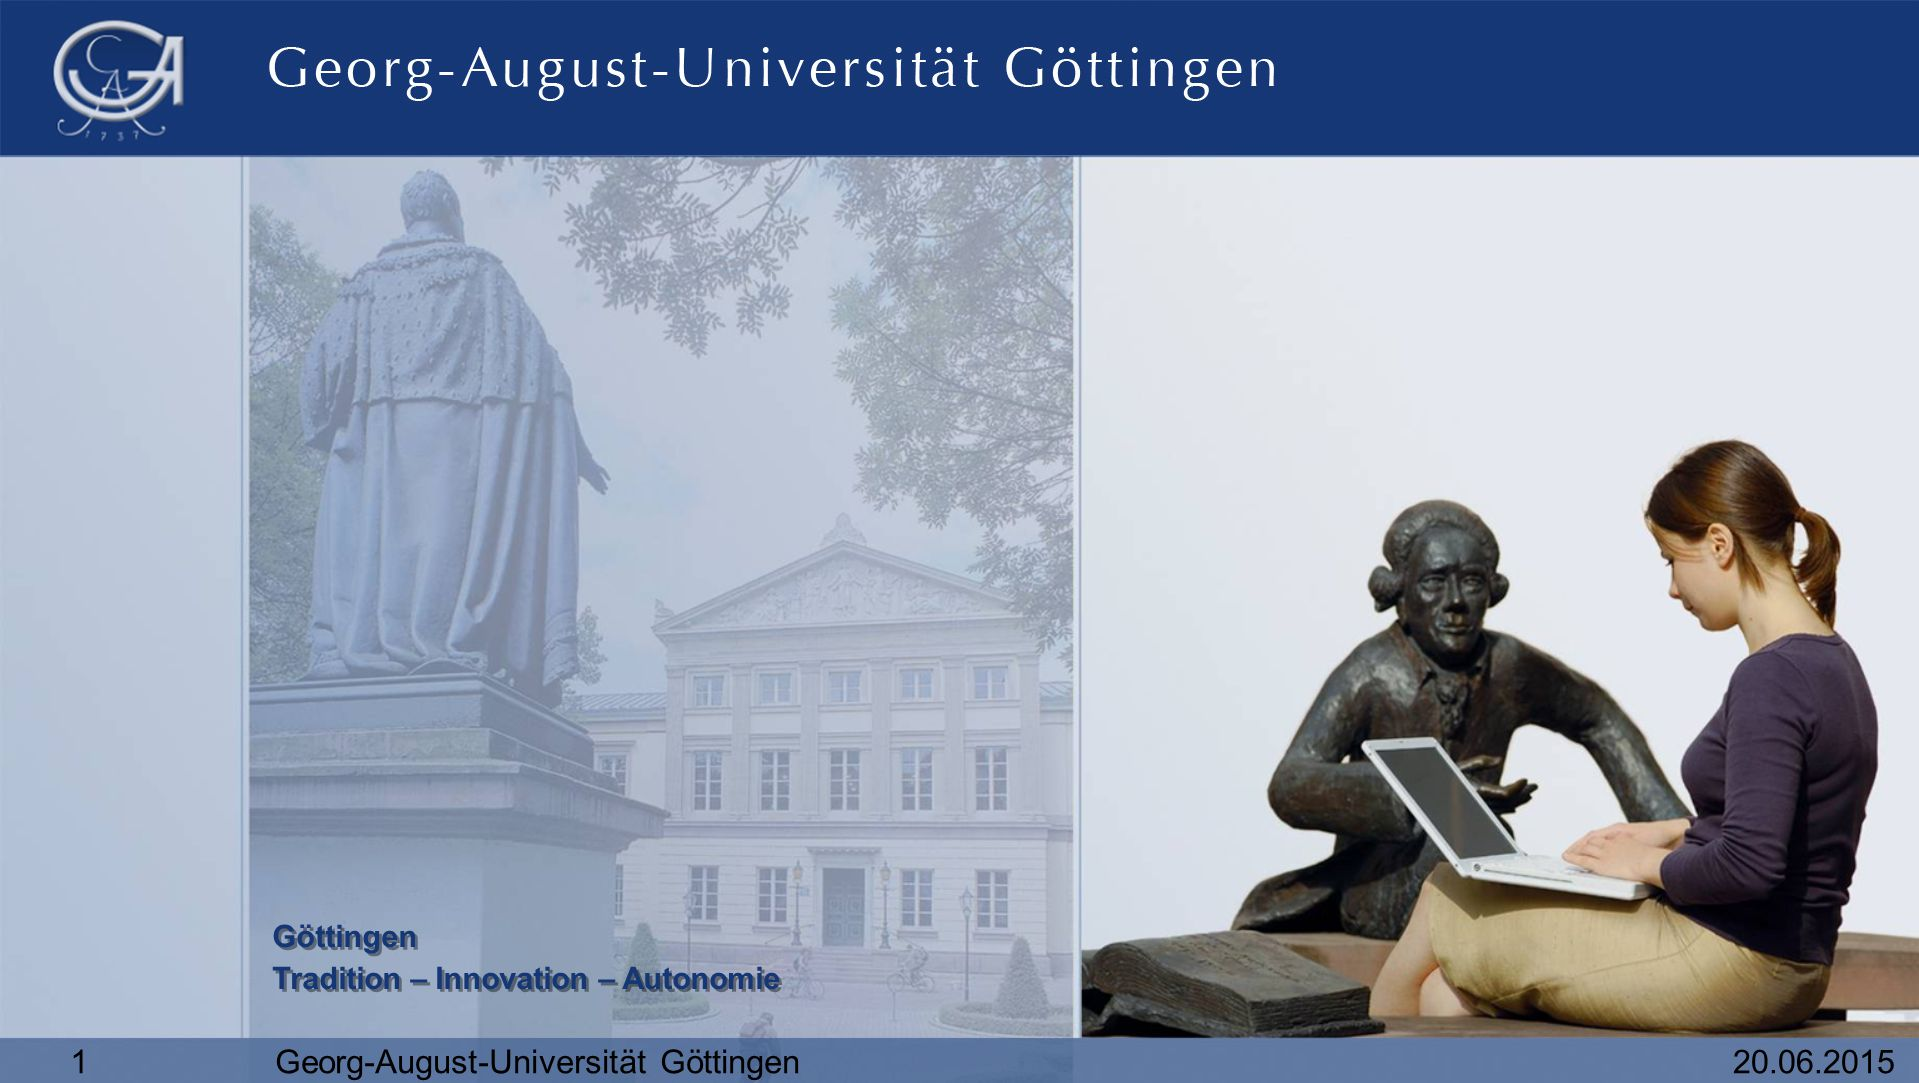 20.06.20151Georg-August-Universität Göttingen Göttingen Tradition – Innovation – Autonomie Göttingen Tradition – Innovation – Autonomie